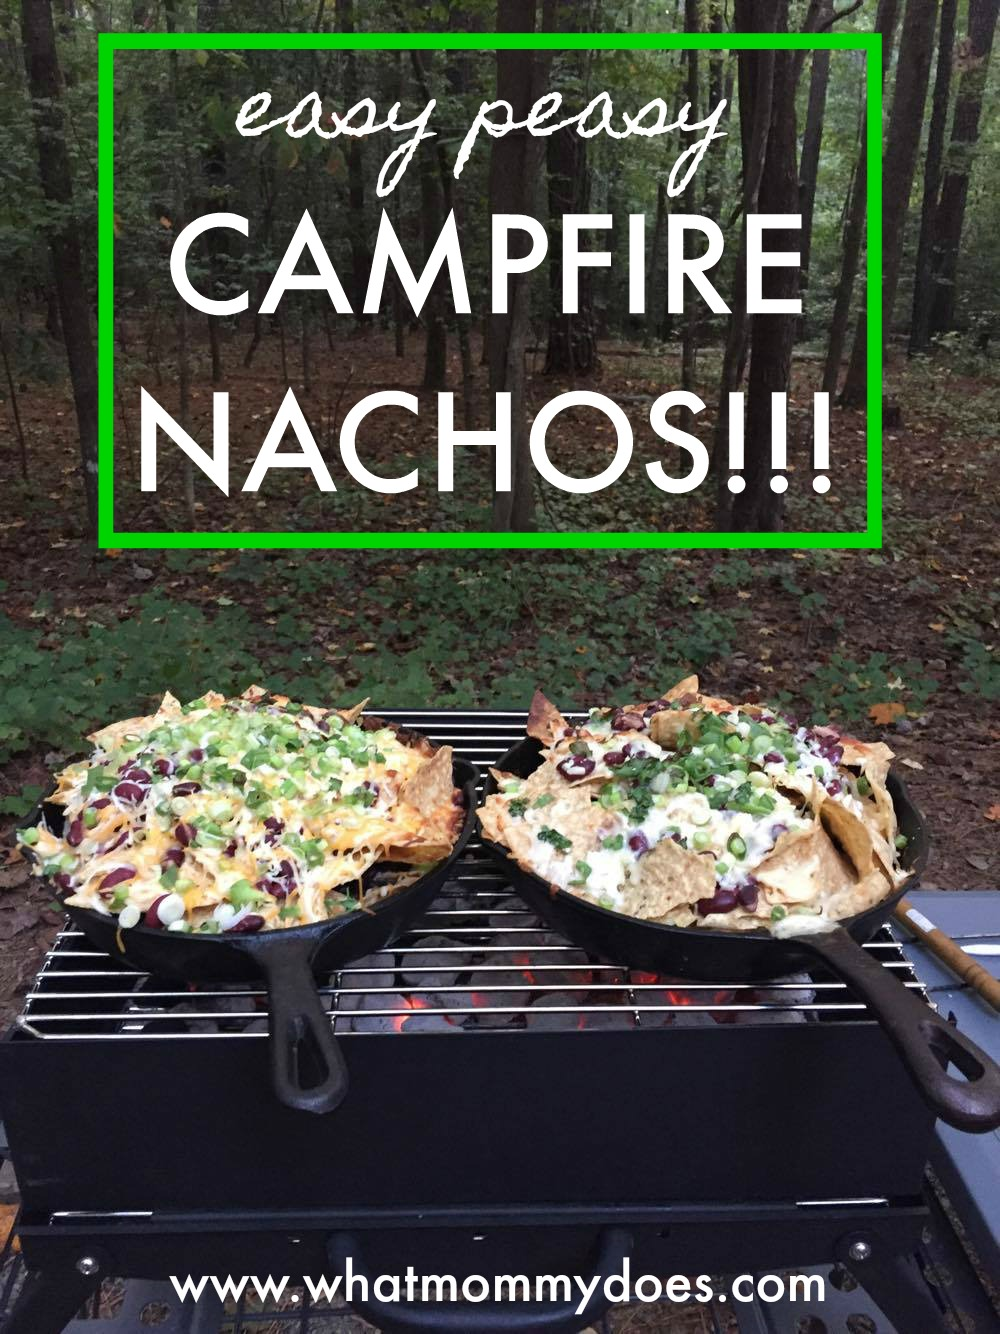 Nachos for our camping trip? Check!! This was the easiest starter for our camping dinner! We used black beans and Cabot cheese, then covered the cast iron skillet w/ foil to melt the cheese faster. Here's a full list of ingredients so you can make them too! You could also do it in a dutch oven or aluminum pan, on the fire or on a propane stove.   easy cast iron campfire nacho recipe, camping meal ideas